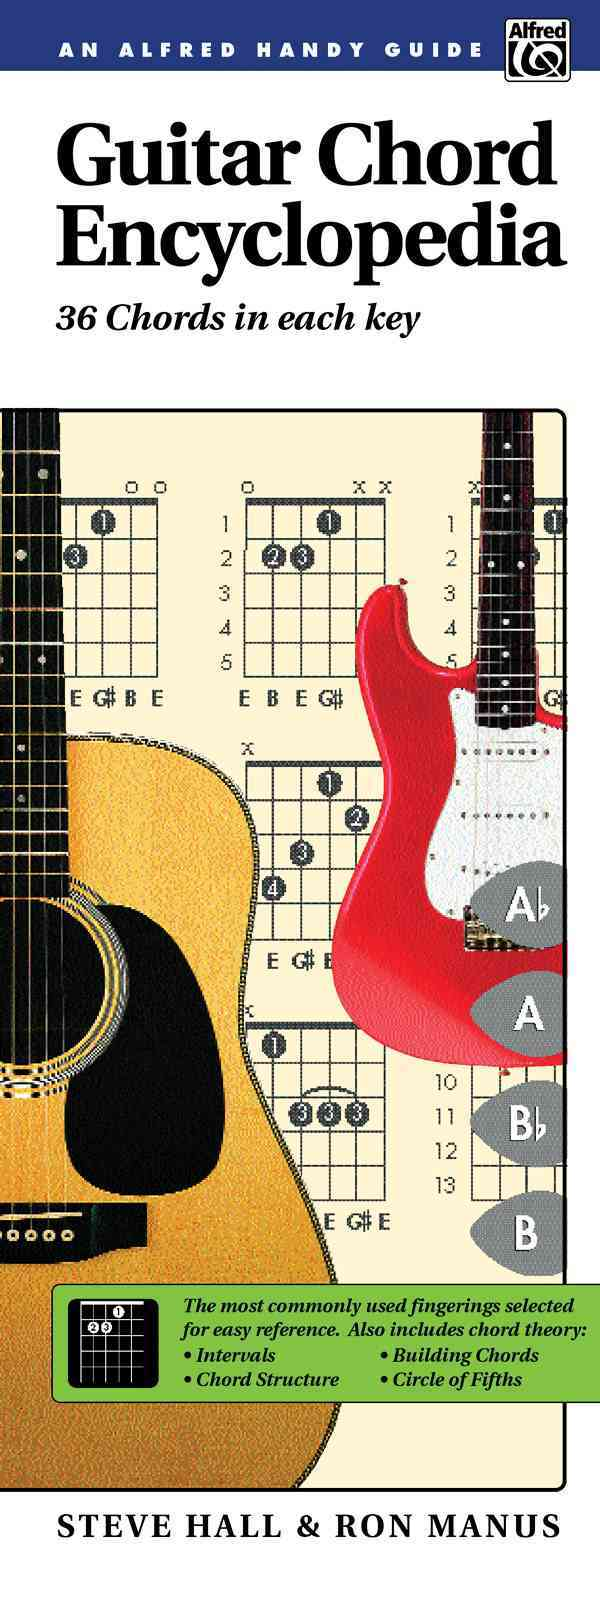 Guitar Chord Encyclopedia: 36 Chords in Each Key (Paperback)